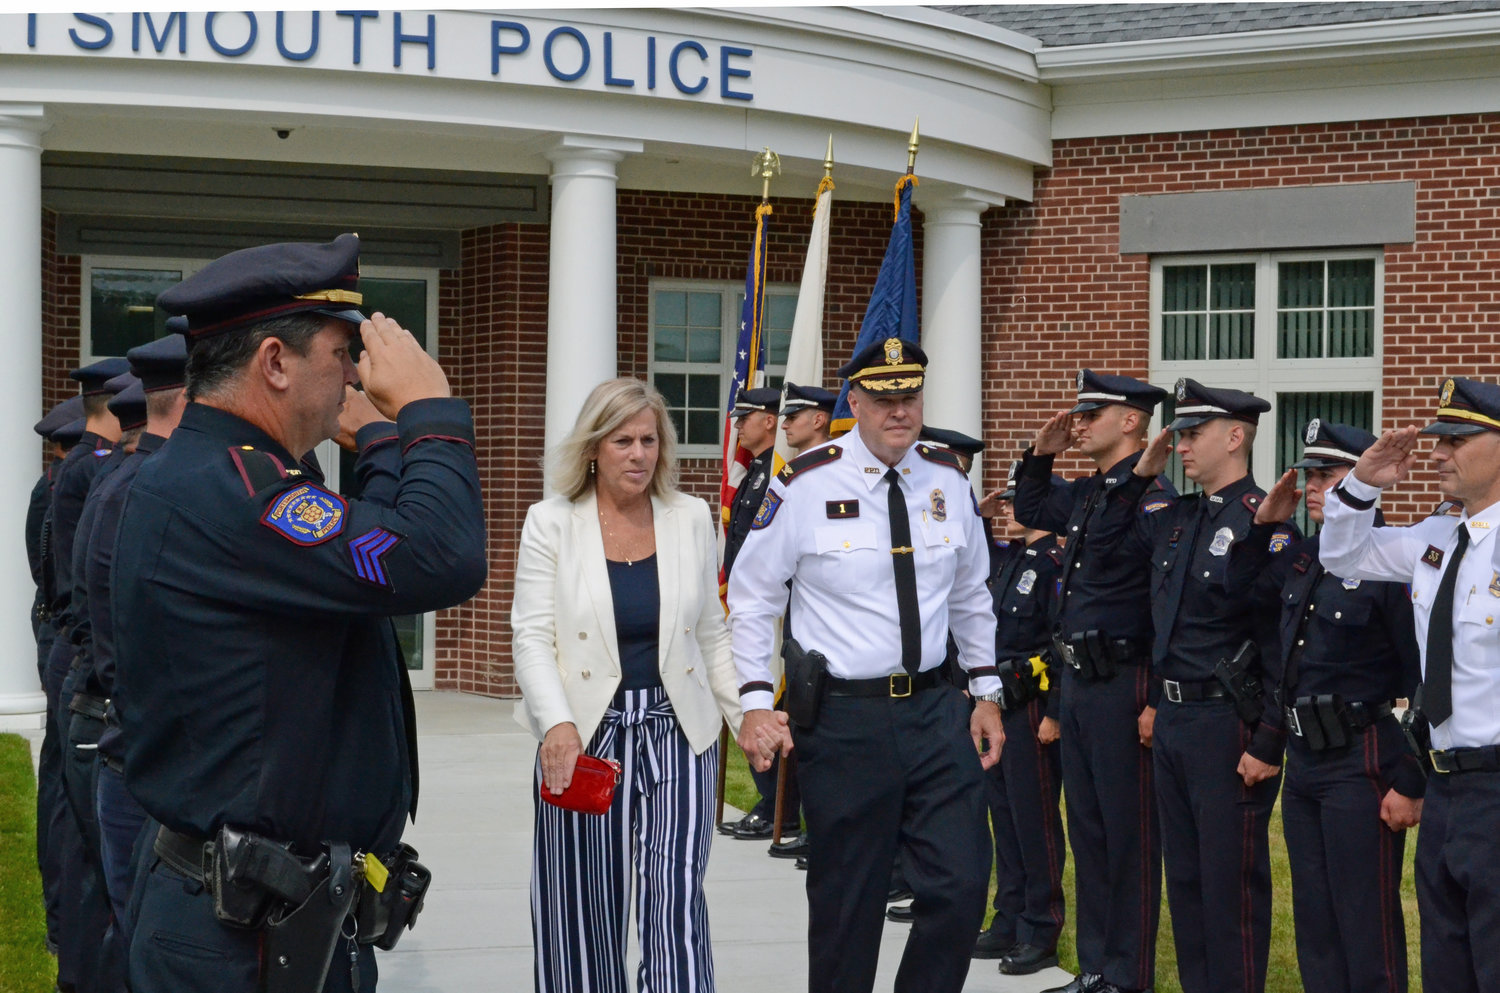 Retiring Police Chief Thomas Lee is saluted by officers as he walks out of the police station with his wife, Mary, a police officer with the Boston Police Department.